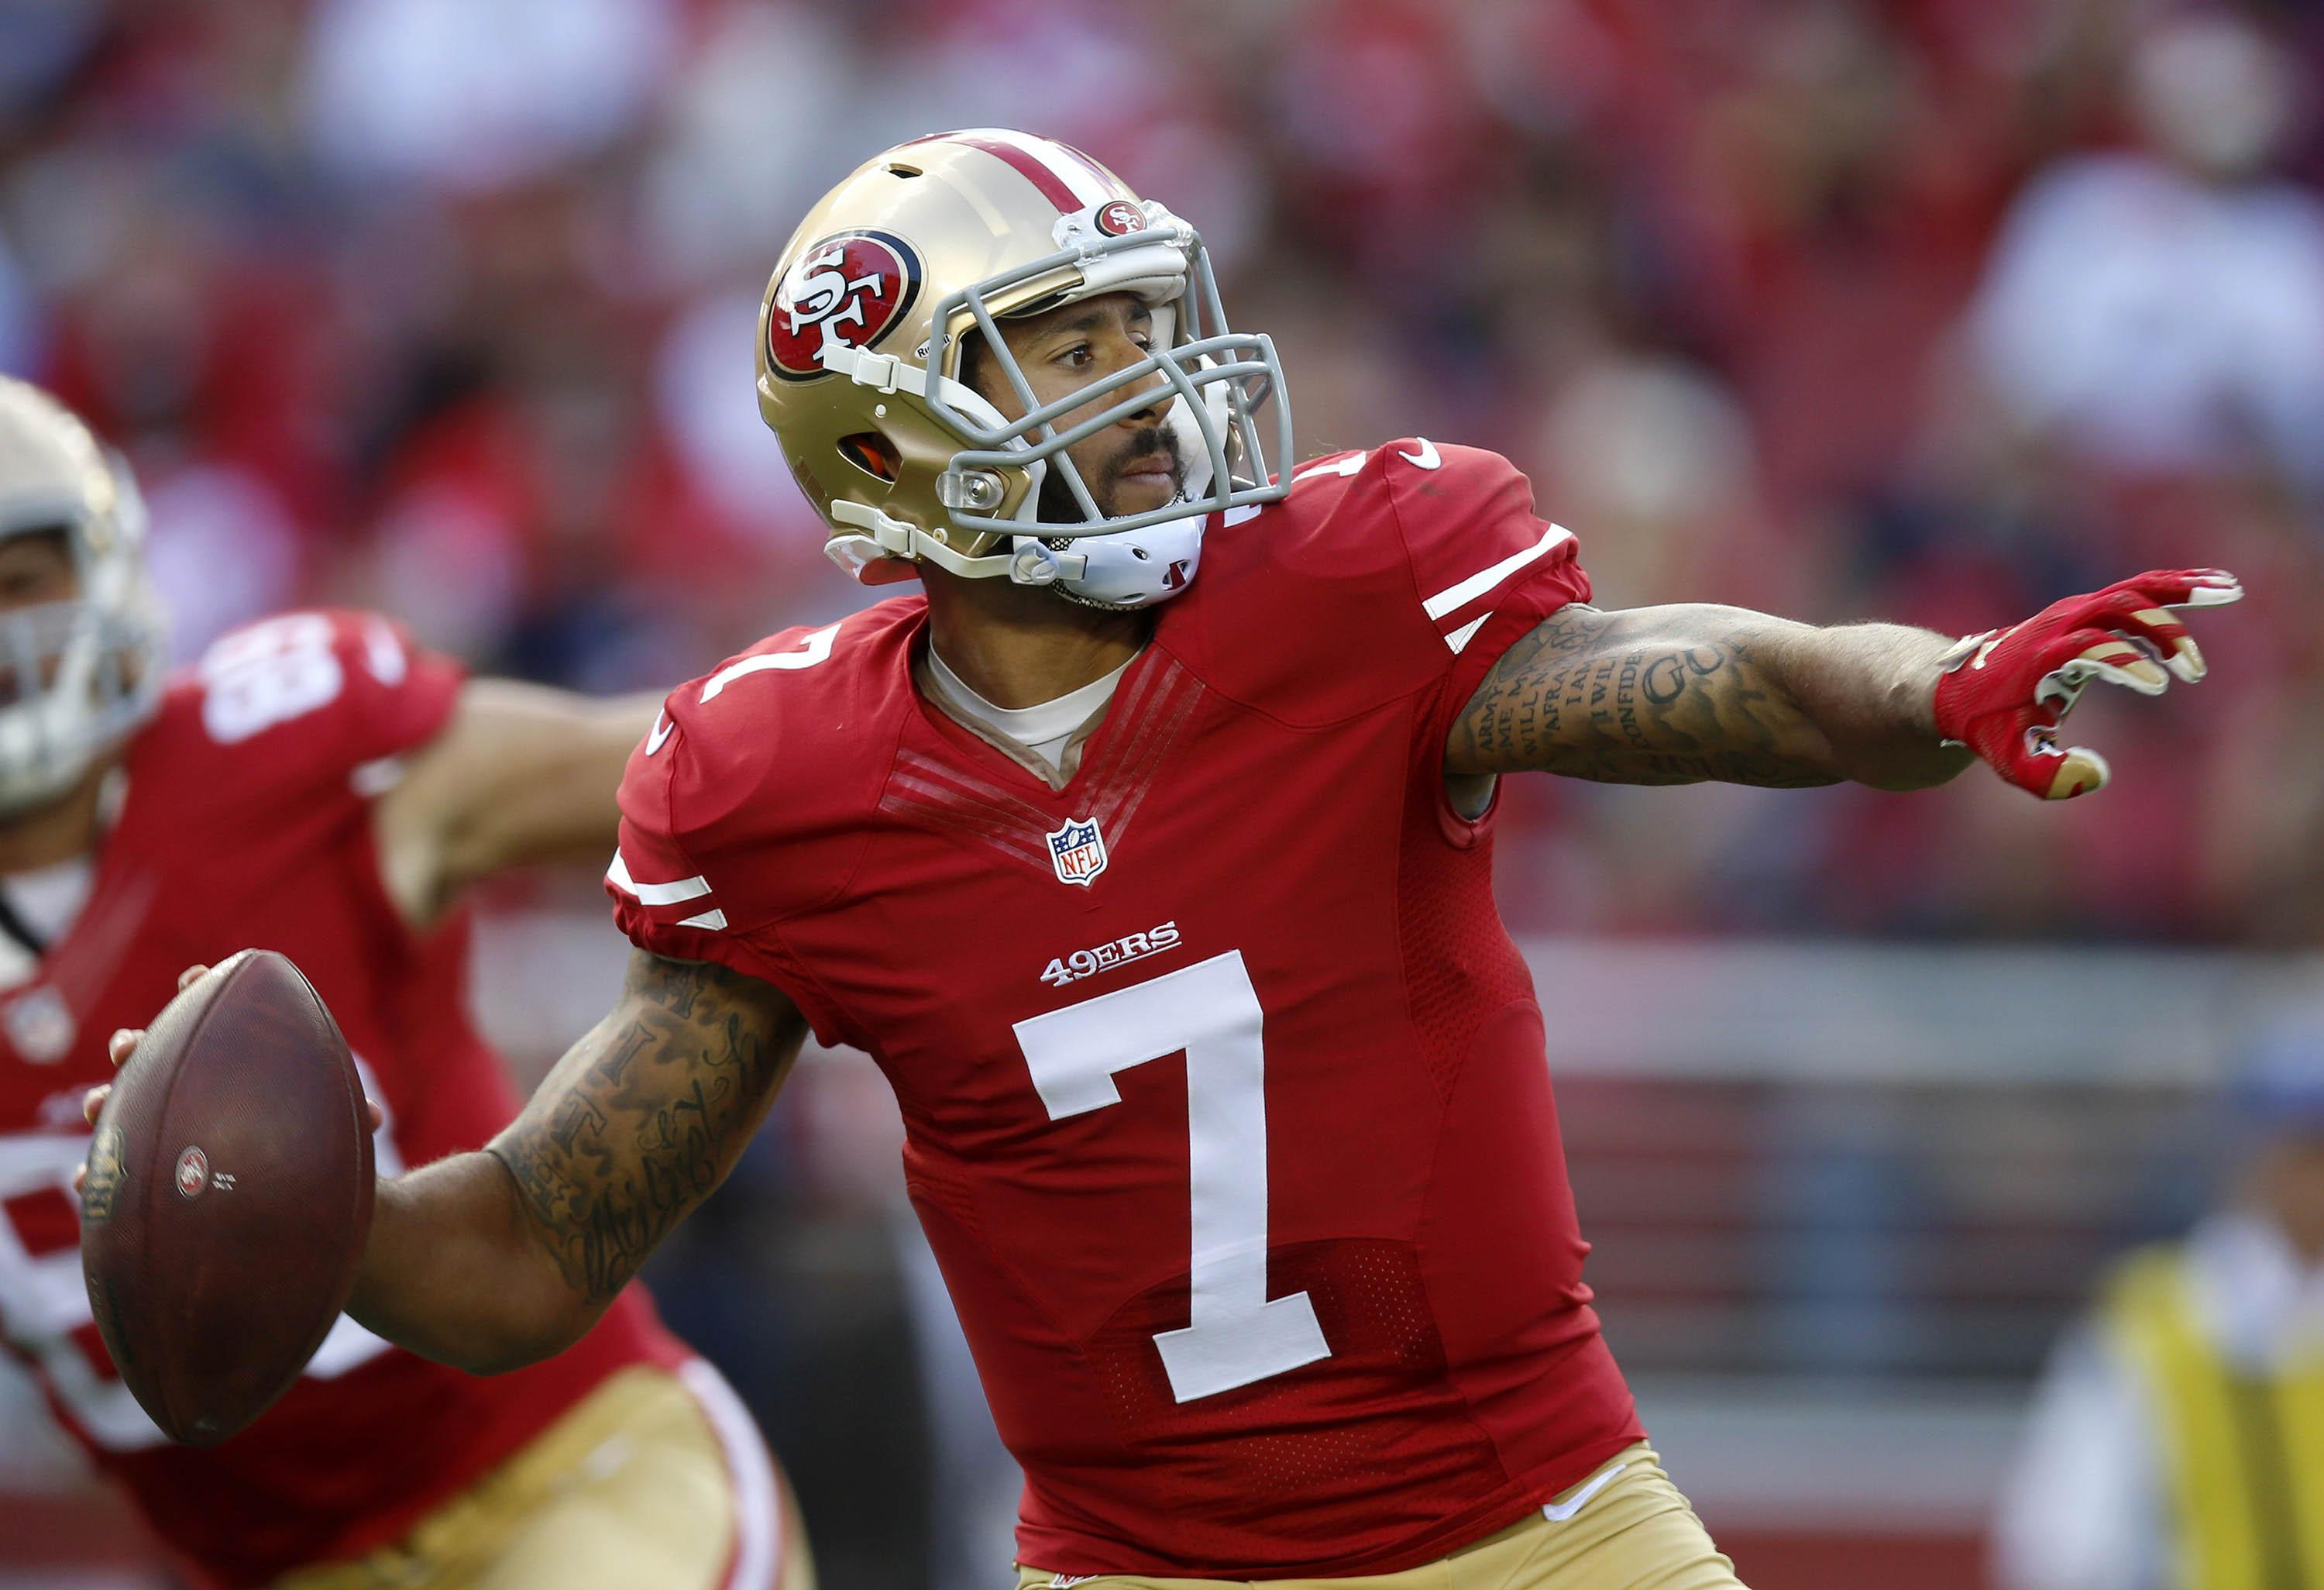 Colin Kaepernick throws a 72 yard touchdown pass against Baltimore Ravens on Sunday, Oct. 18th. Kaepernick refused to stand for the national anthem prior to the preseason matchup against the Green Bay Packers Aug. 26. Green Bay won the game 21-10